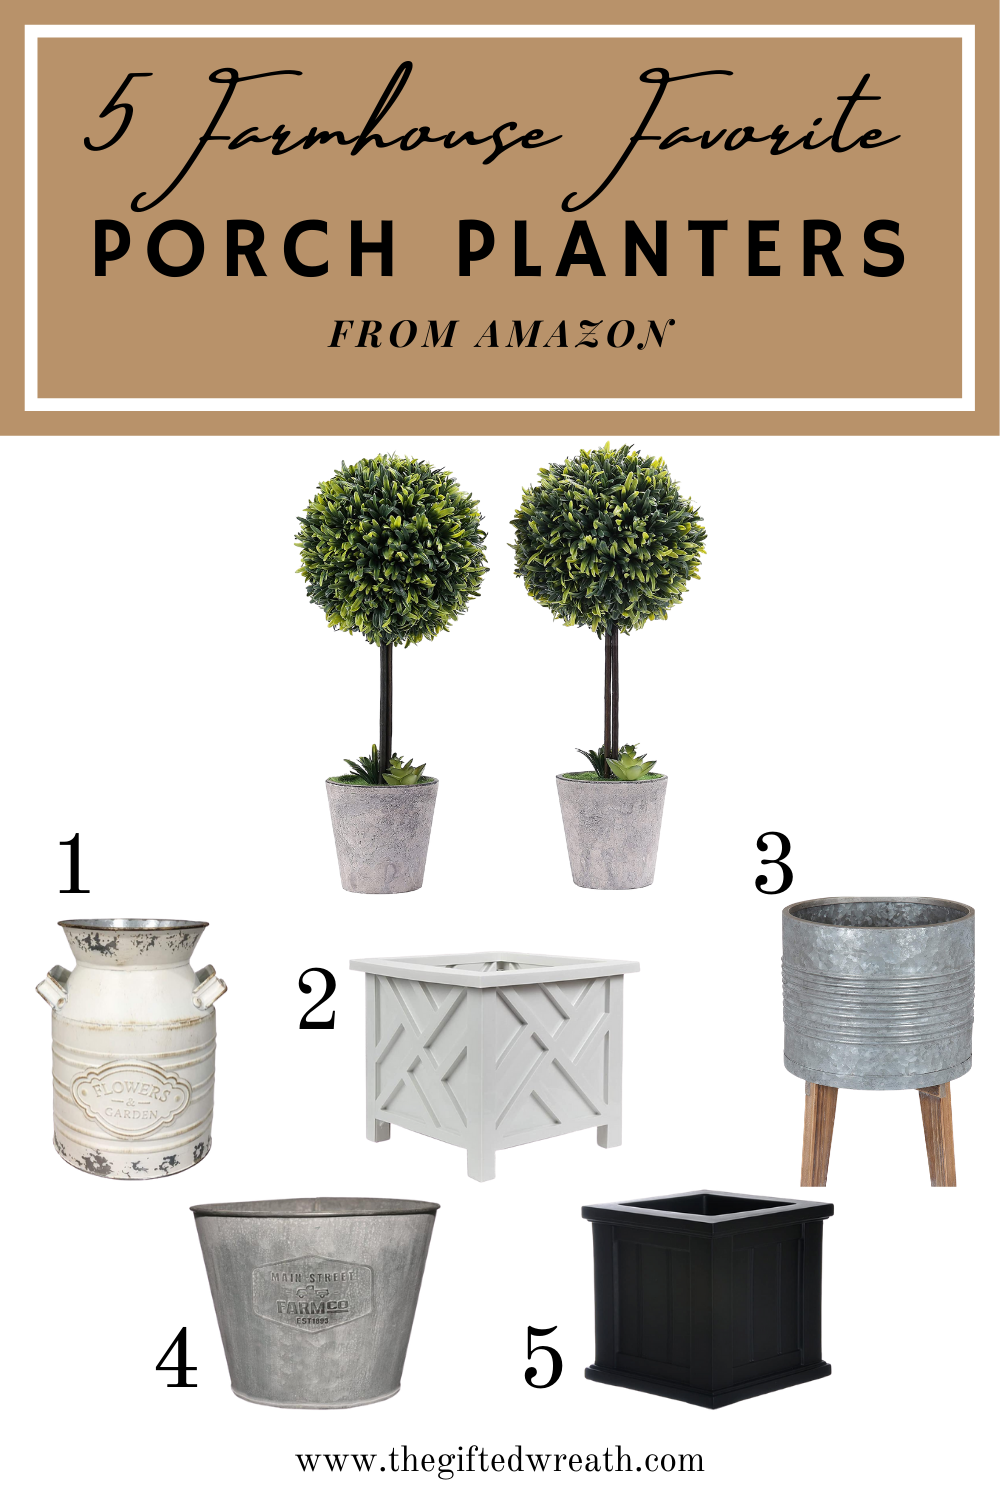 Sharing 5 Farmhouse Favorite Porch Planters from Amazon